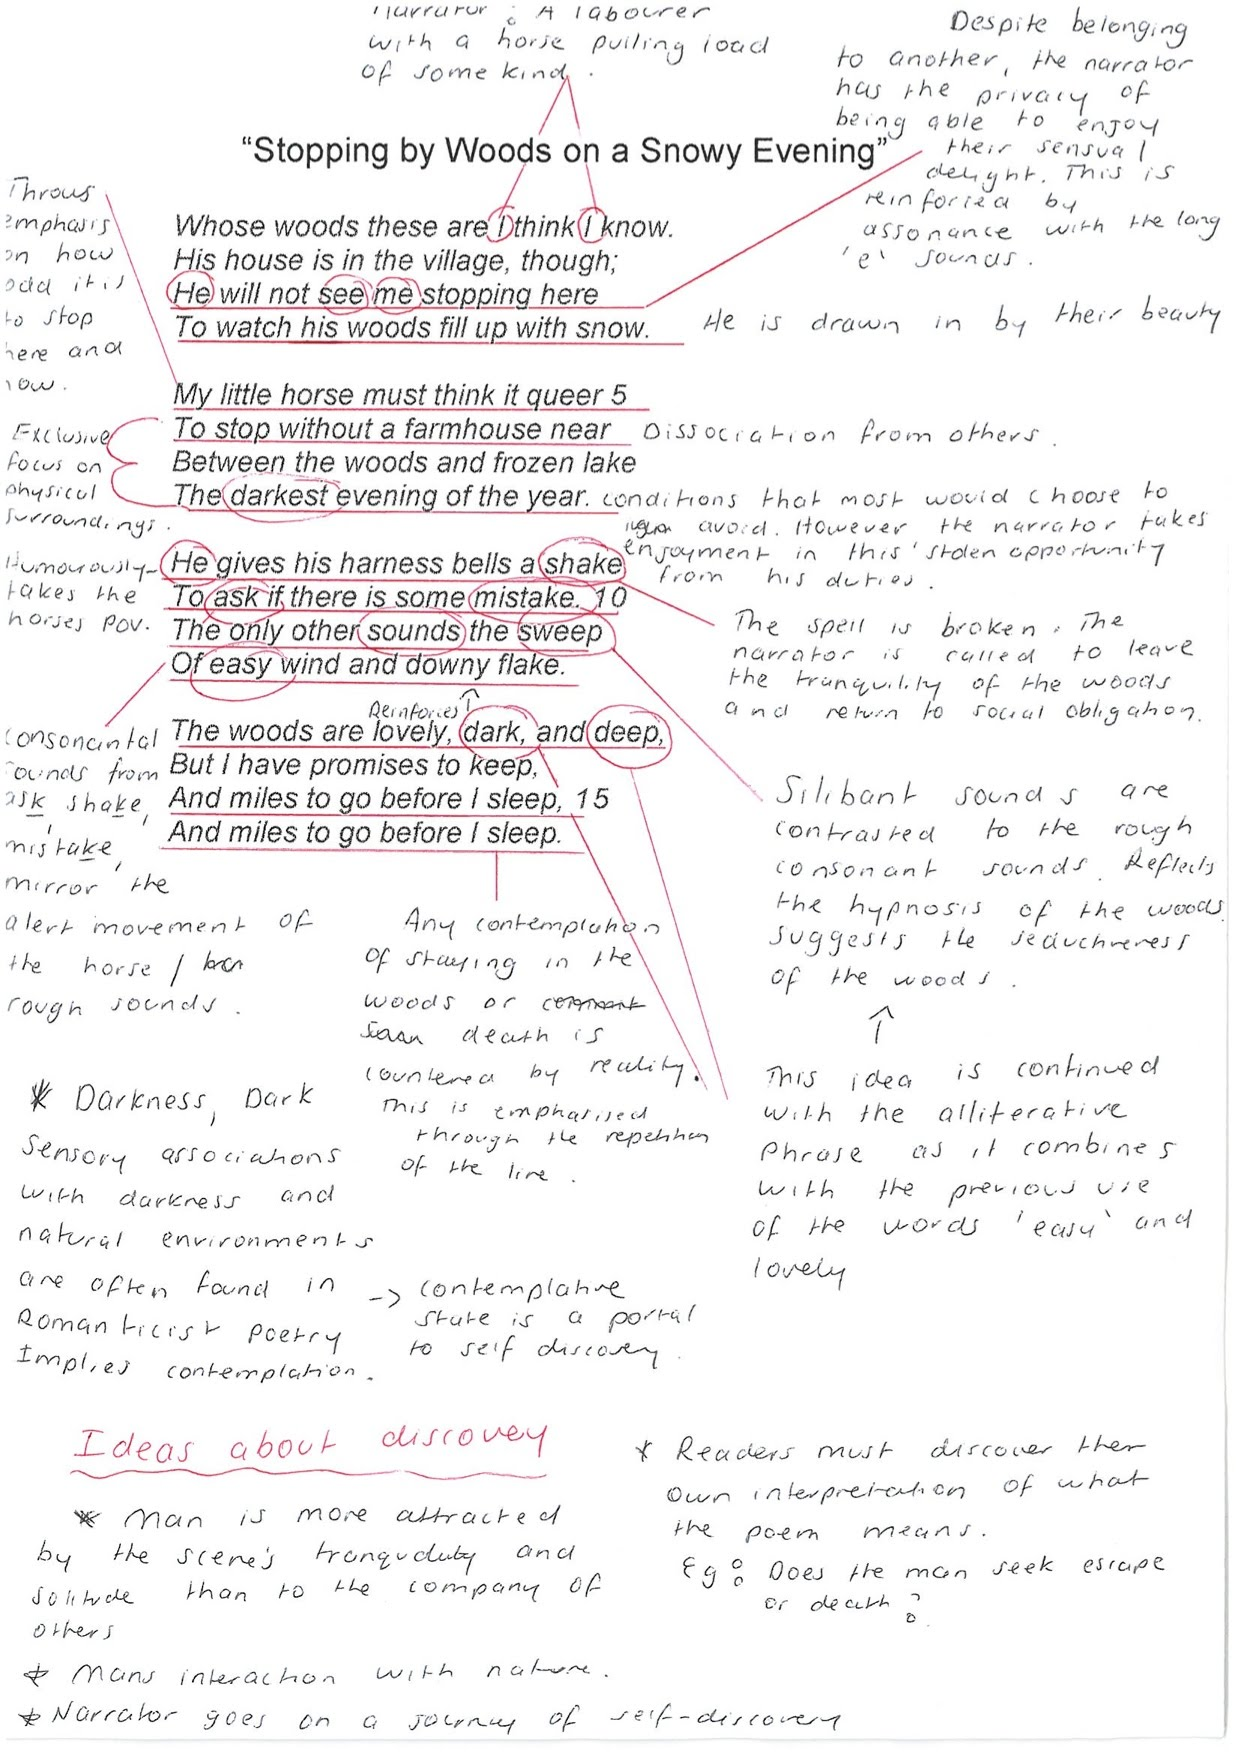 the mending wall essay Summary of mending wall by robert frost lines 1-9: the narrator expresses his wonder about a phenomenon, through these lines, that he has observed in nature.